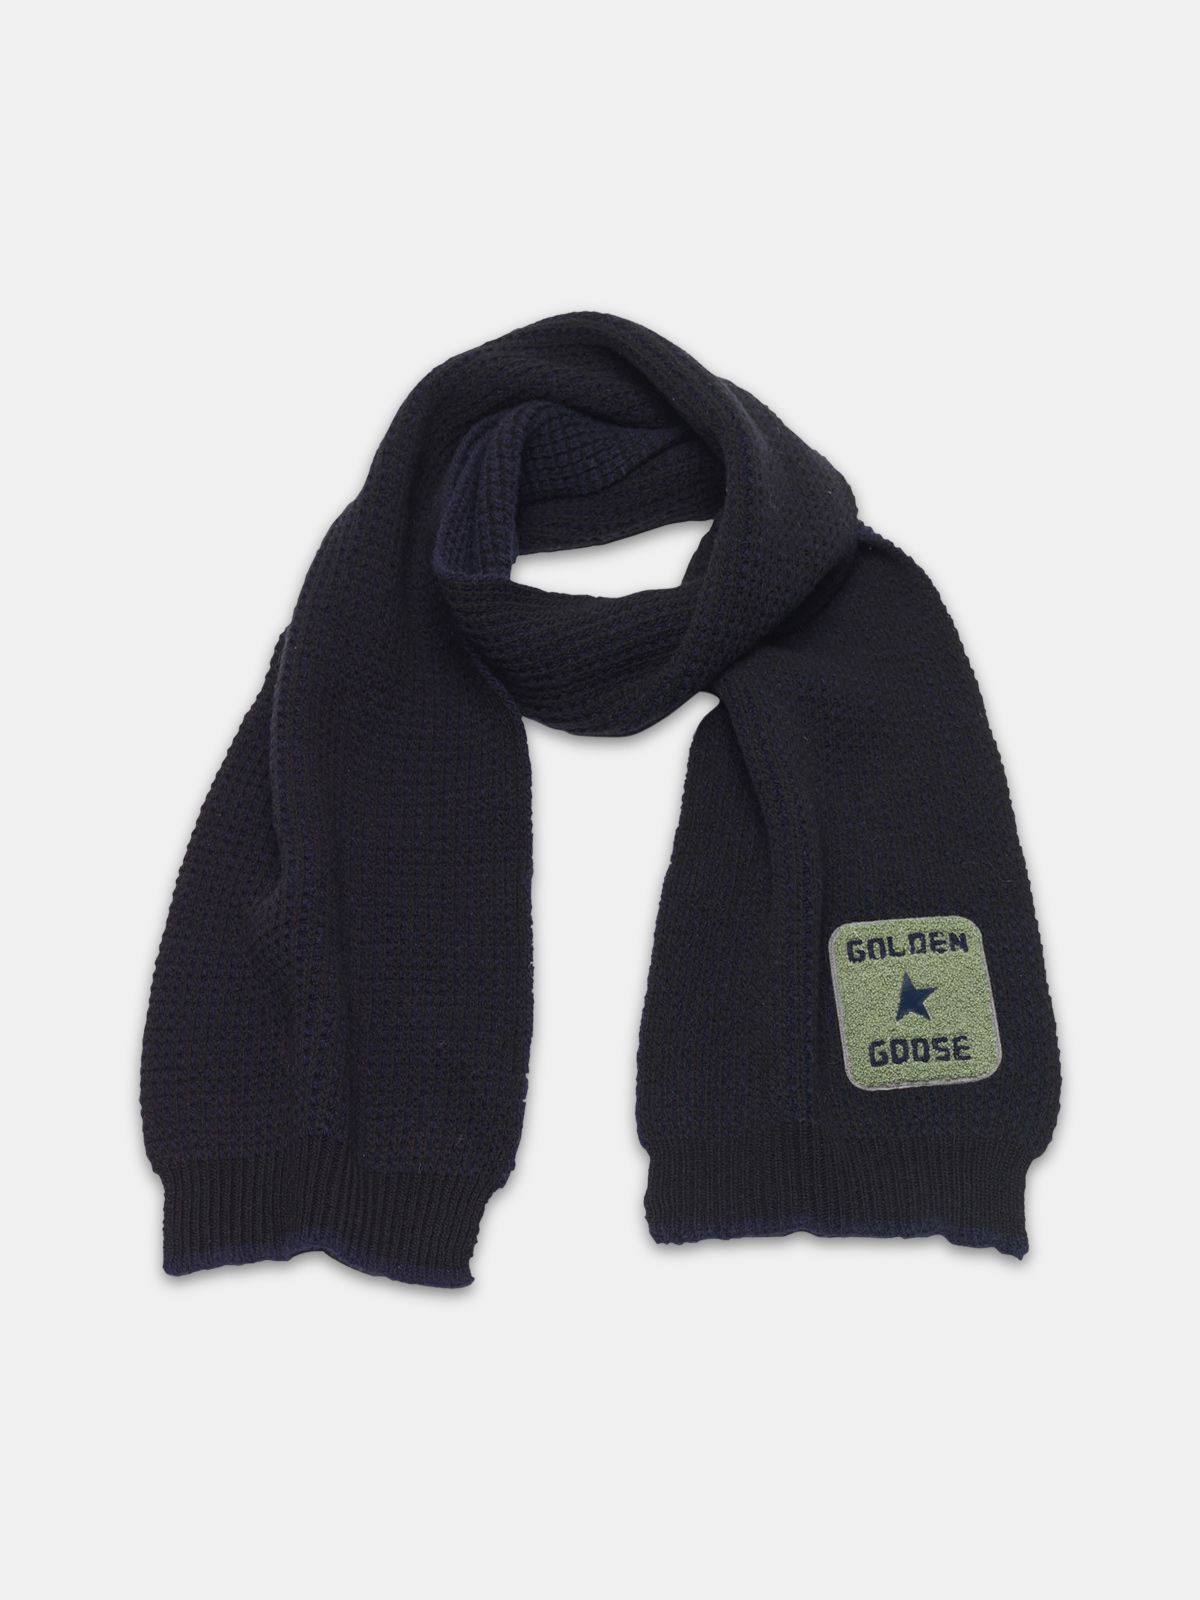 Golden Goose - Kei scarf made of extra fine merino wool in